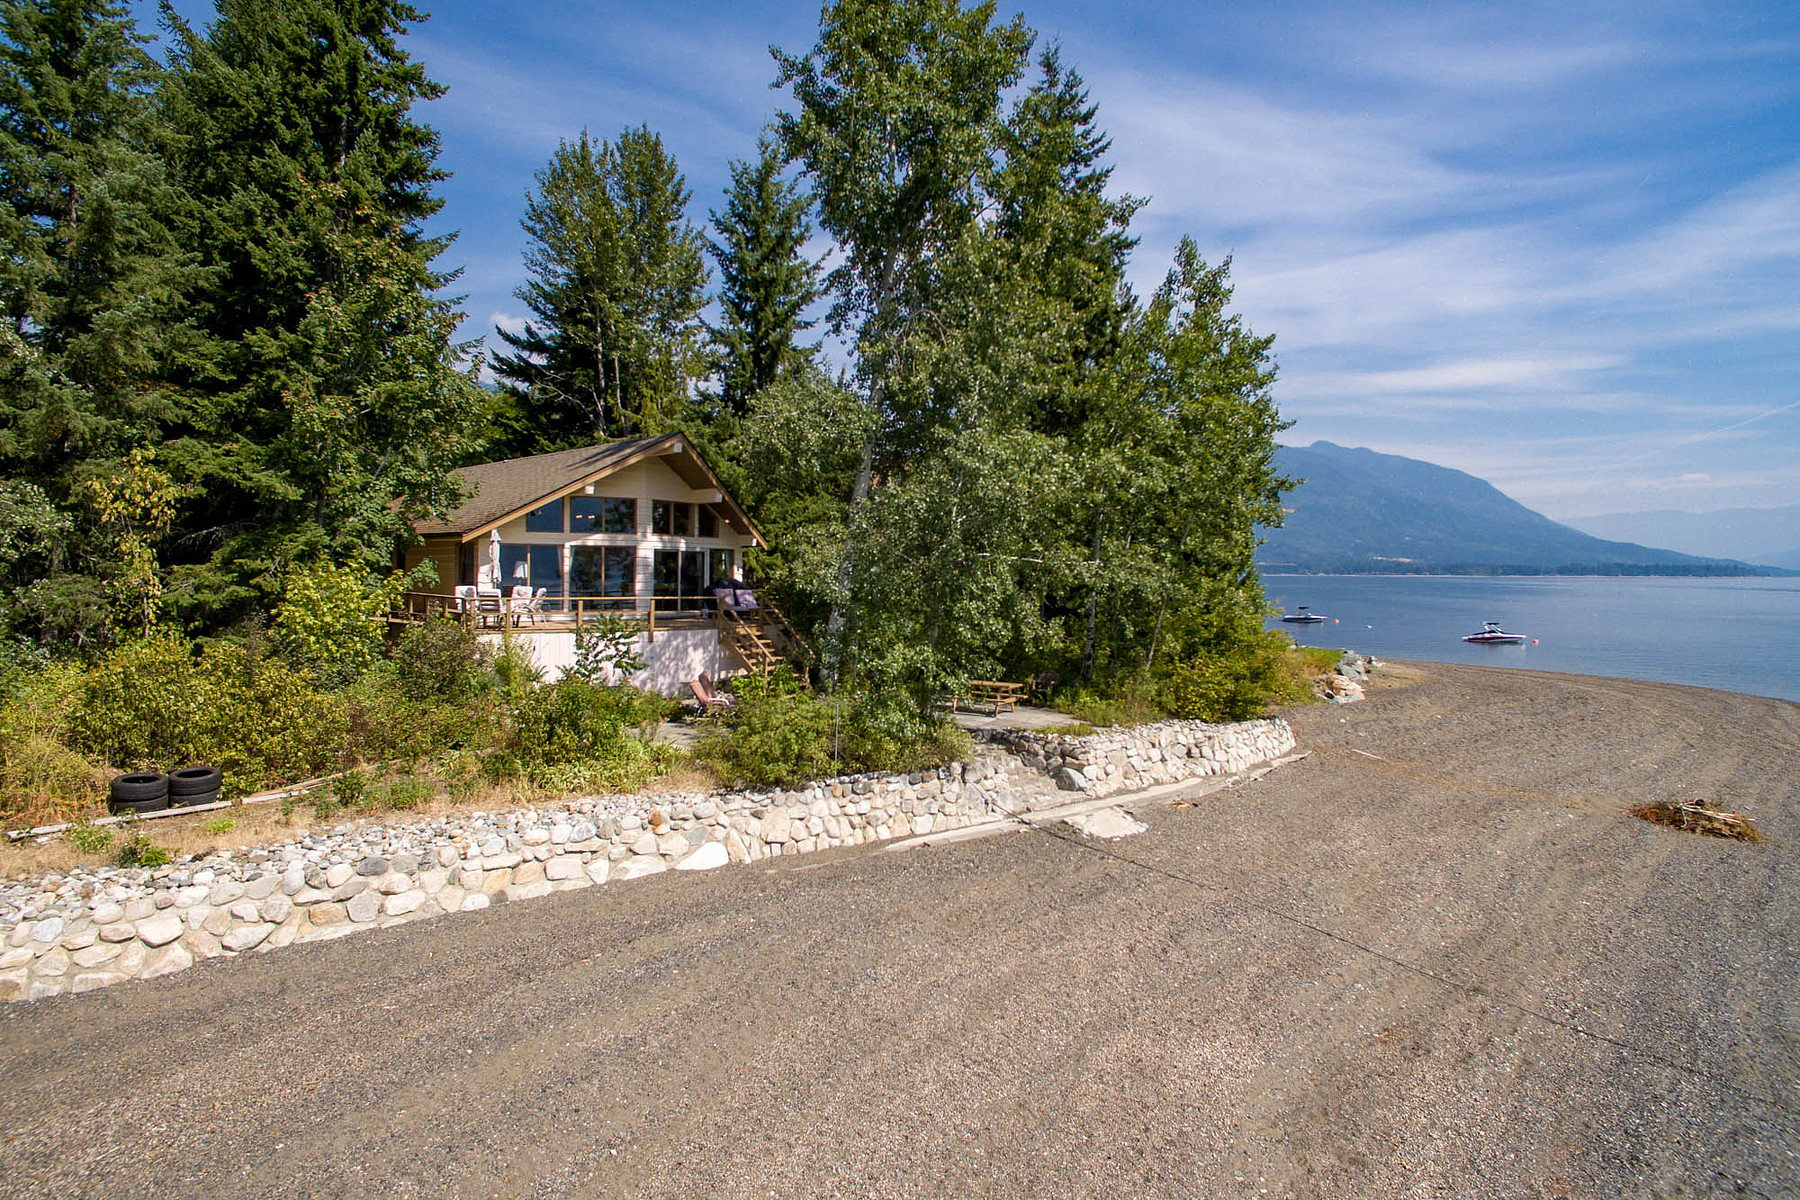 Villa per Vendita alle ore Beach House at Shuswap Lake 18-6102 Davis Road Magna Bay, Columbia Britannica, V0E 1M7 Canada